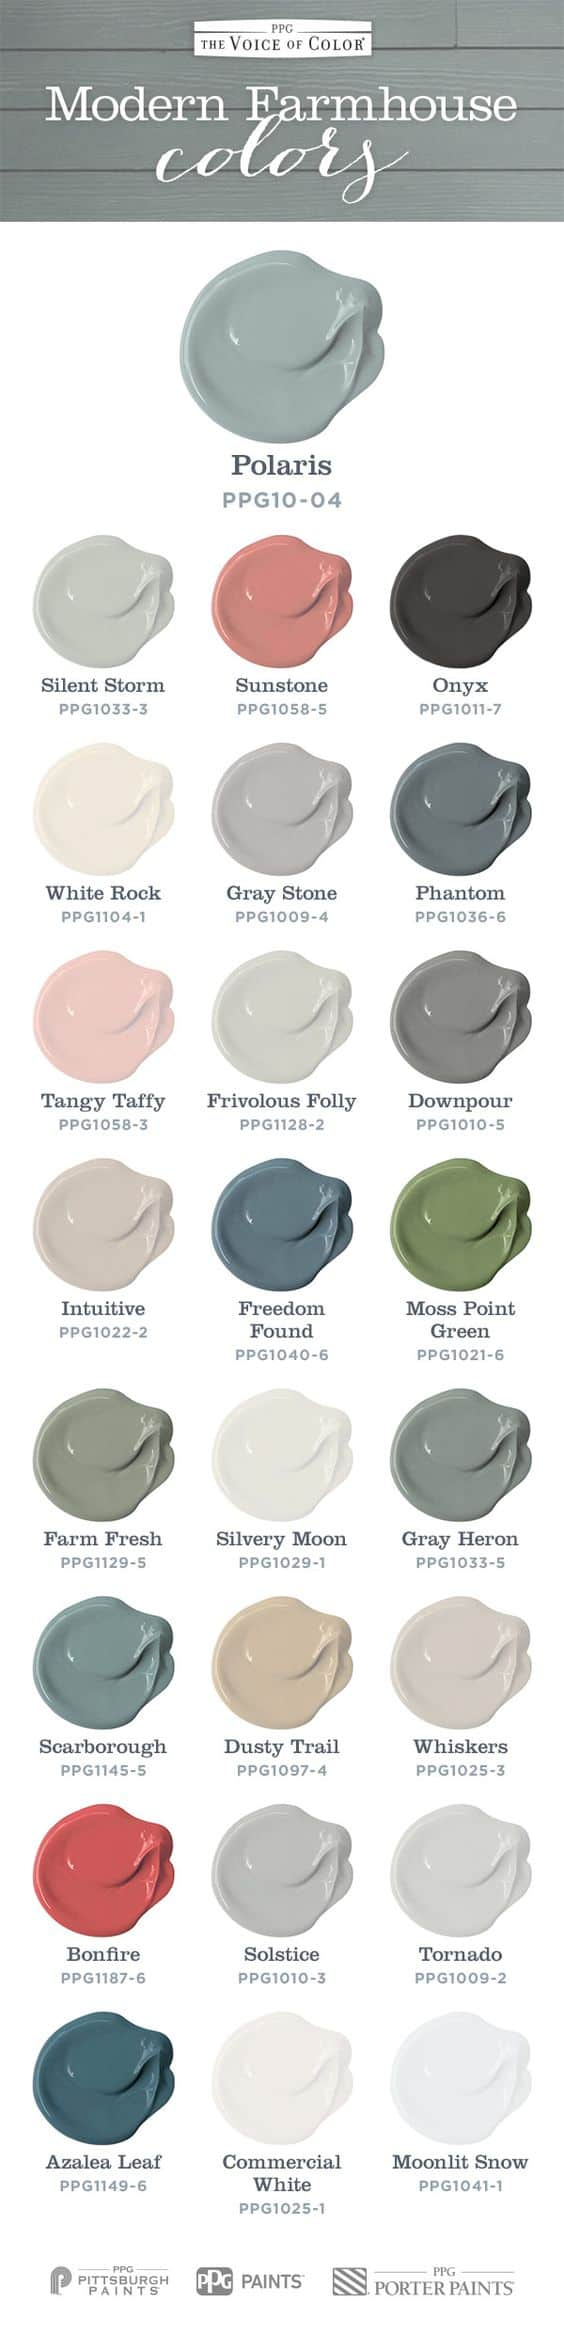 Modern Farmhouse Colors From Voice Of Color Fynes